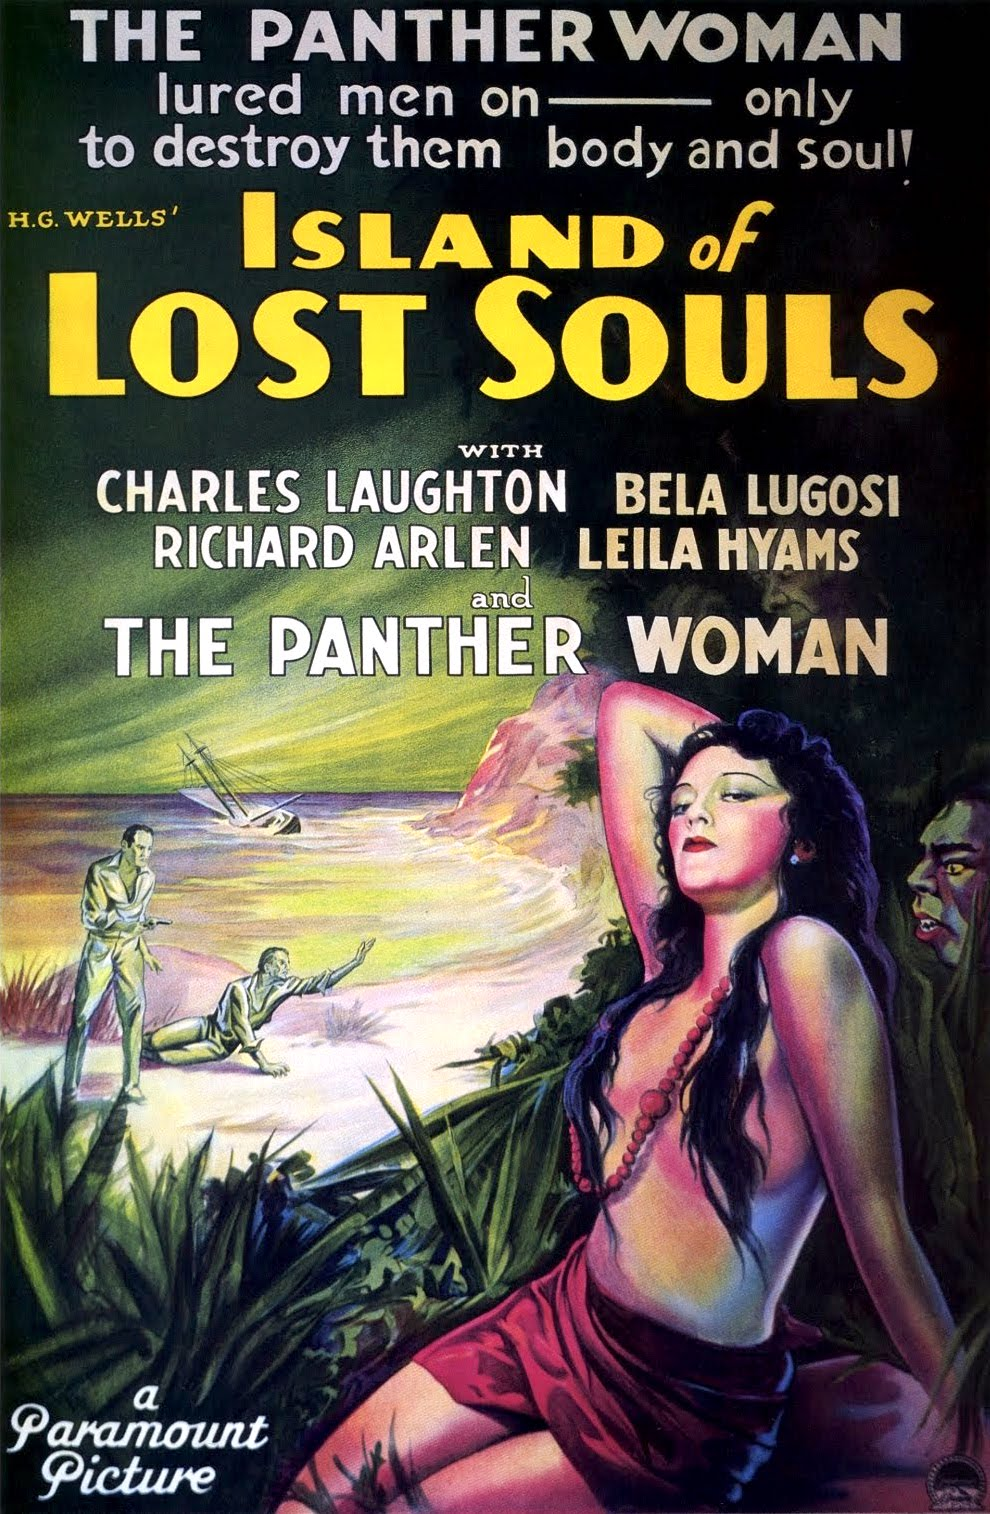 Island of Lost Souls (1932 film) - Wikipedia